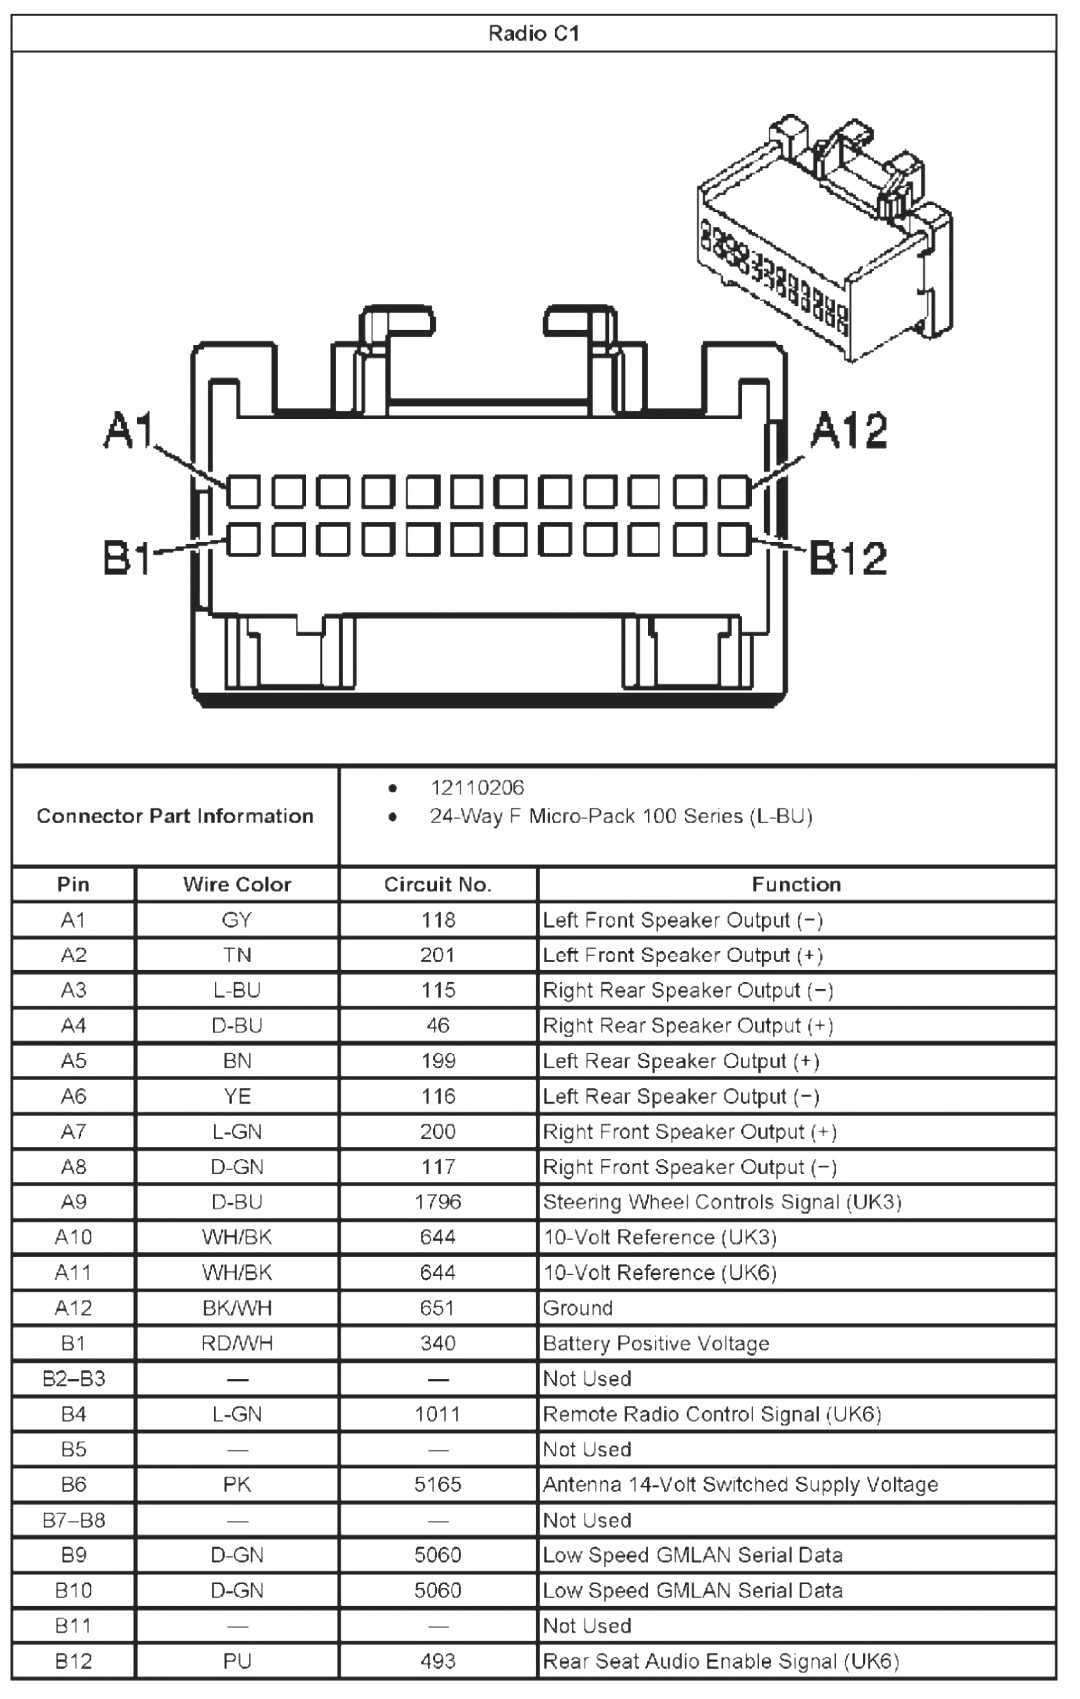 2003 chevy impala wiring diagram 2 port zone valve radio gallery